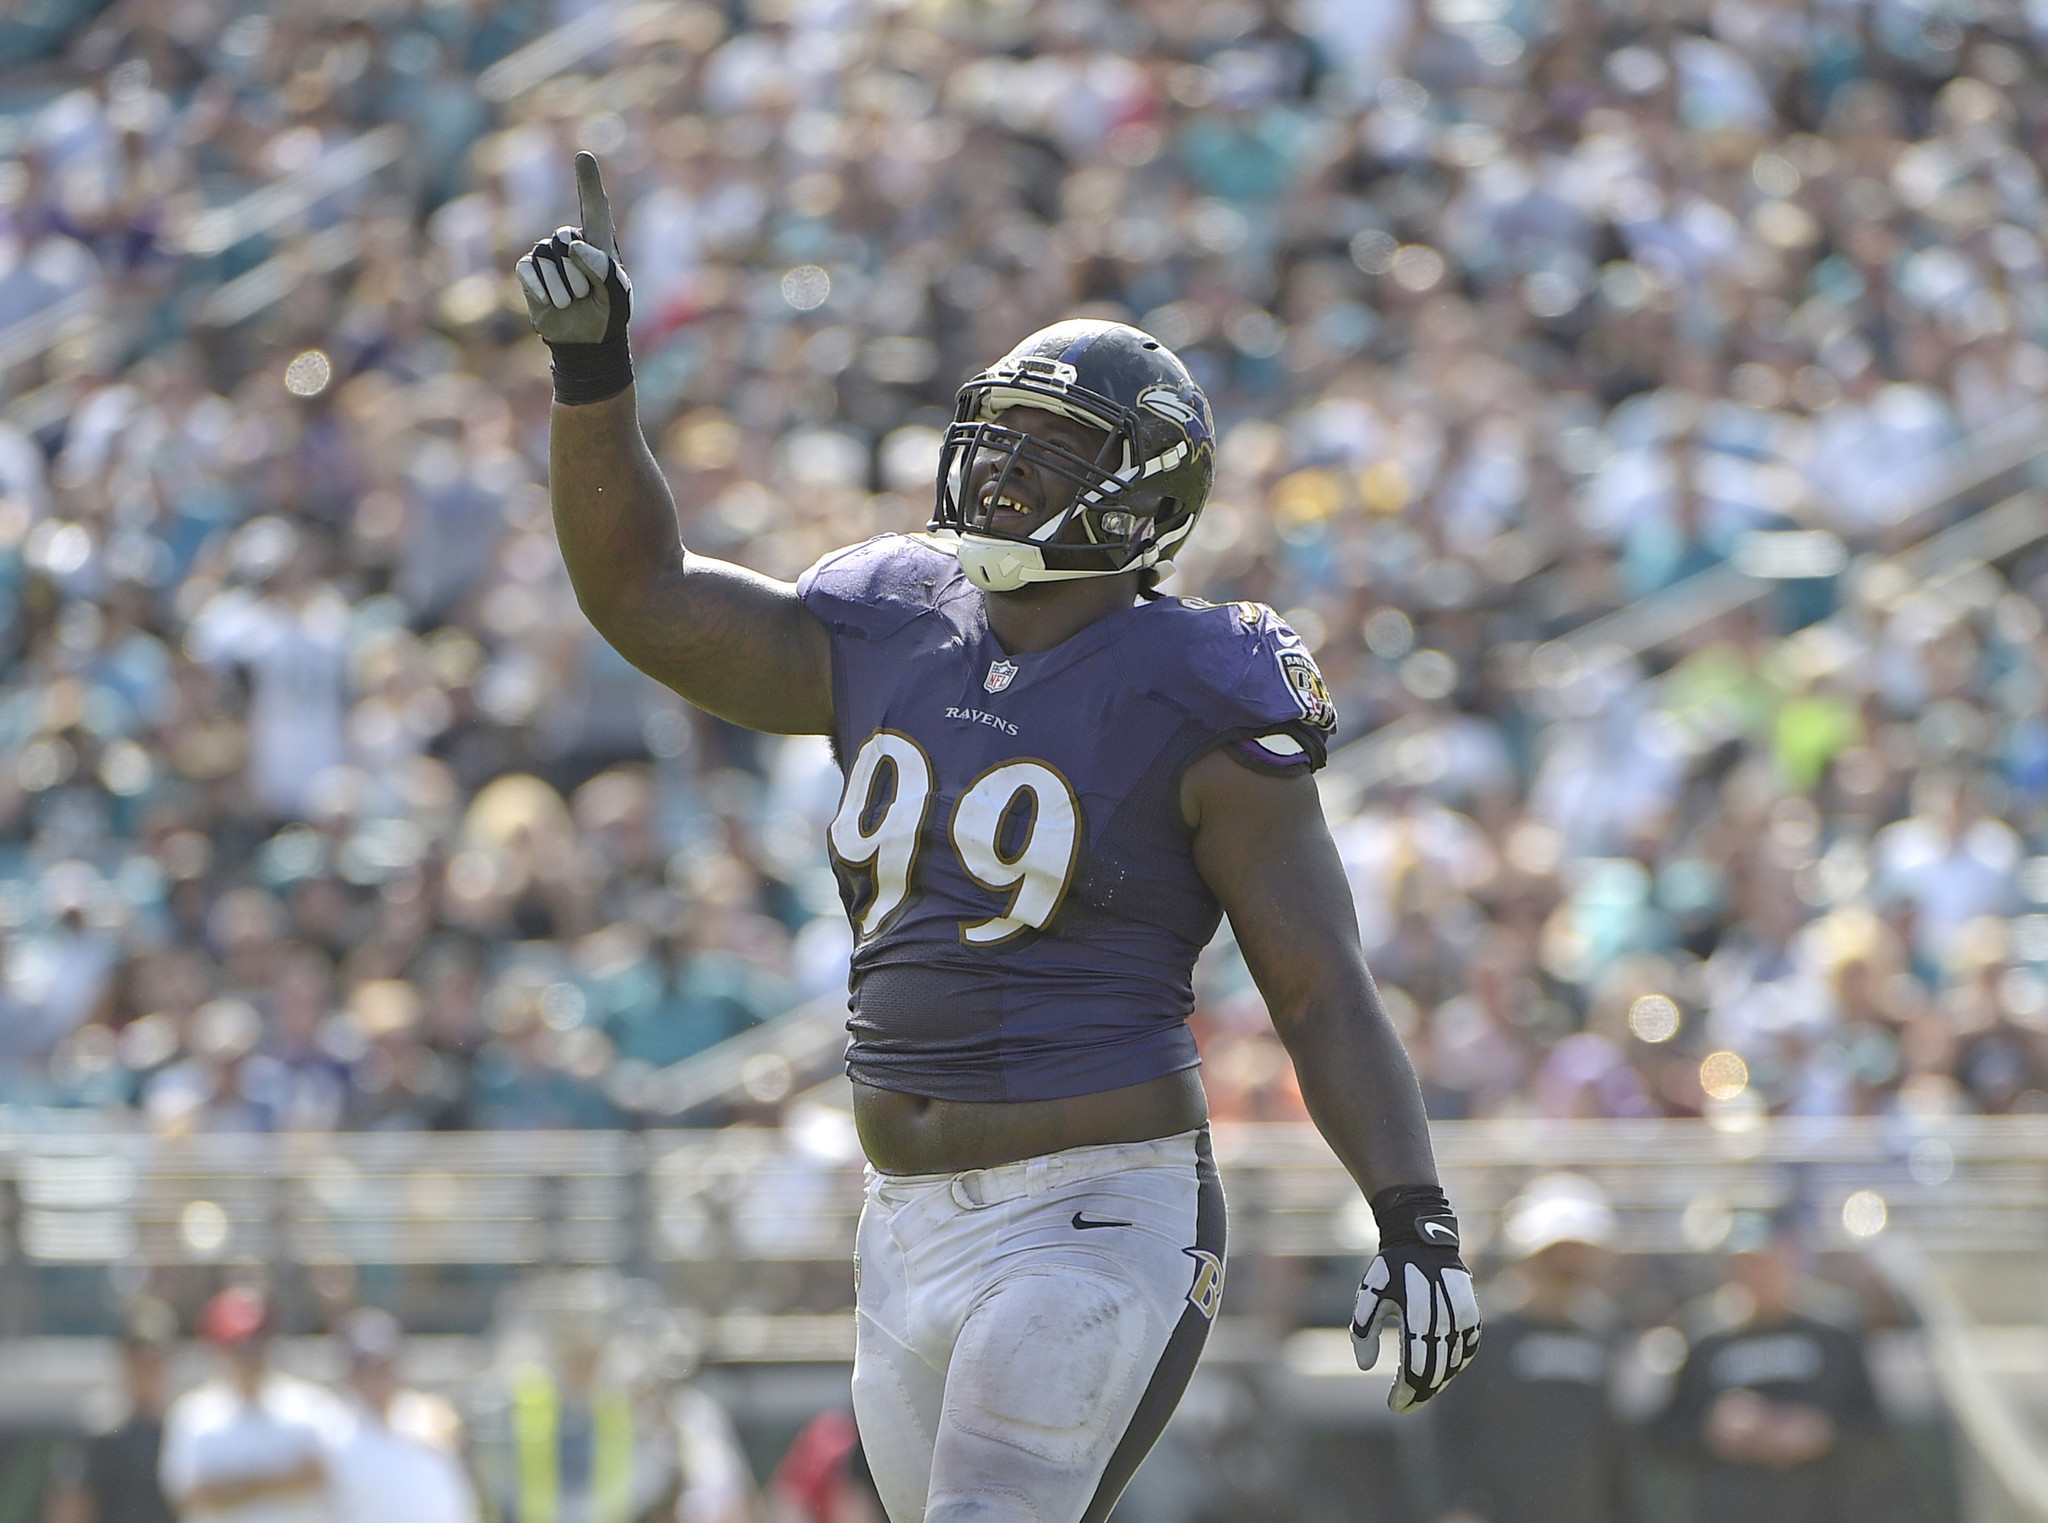 Bal-ravens-news-notes-and-opinions-20161129